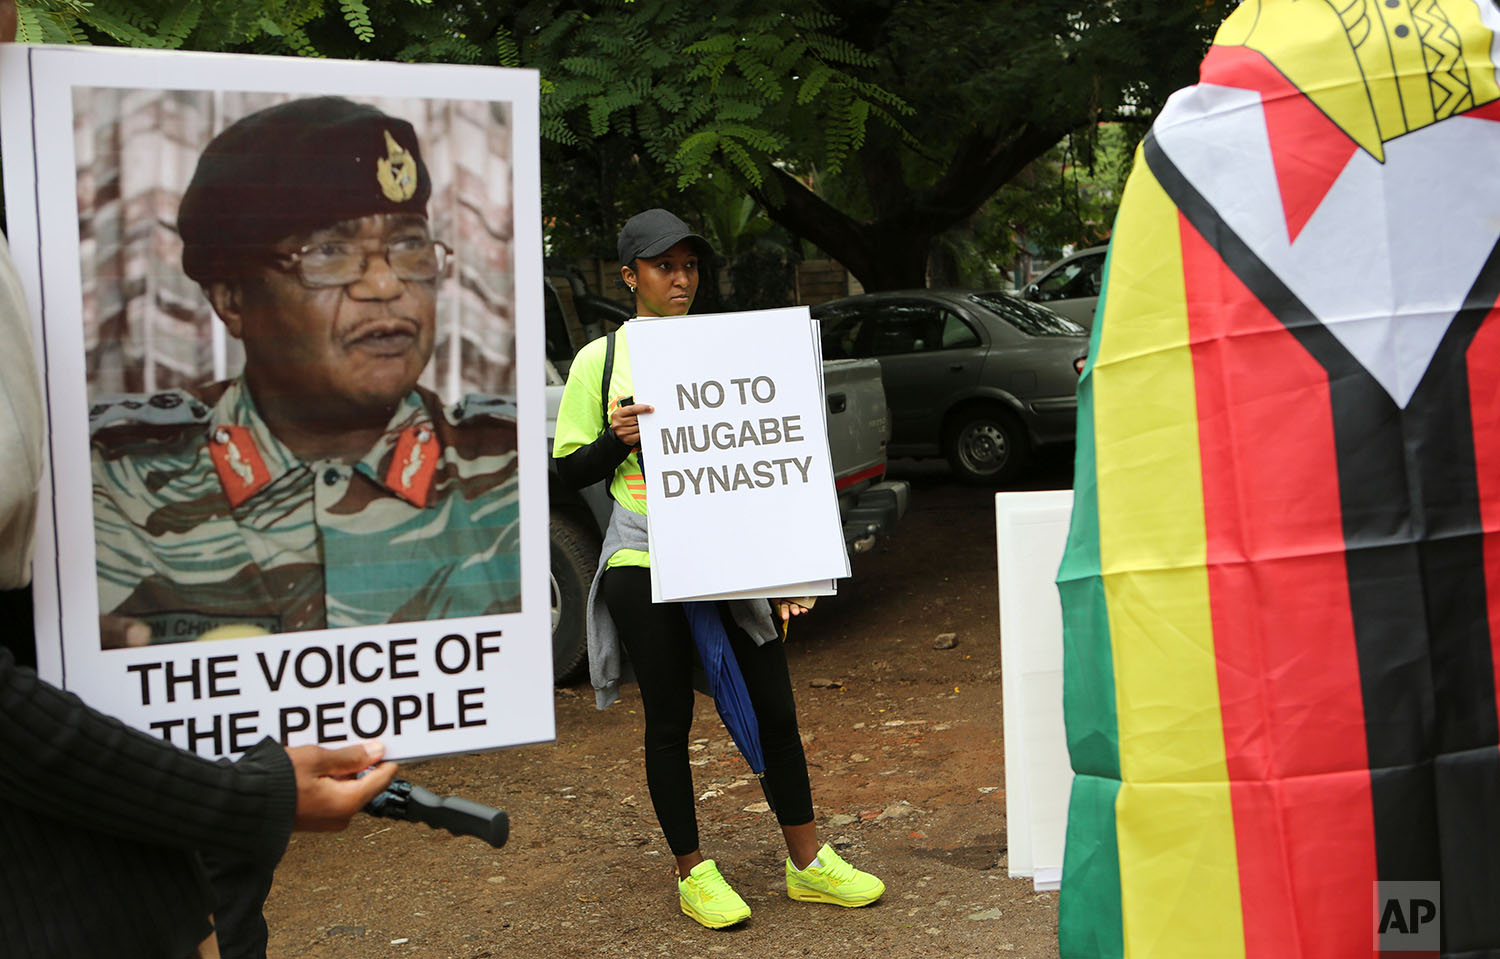 People hold their messages in Harare to demonstrate for the ouster of President Robert Mugabe who is virtually powerless and deserted by most of his allies, Saturday, Nov. 18, 2017. Zimbabwe's generals, including Constantino Chiwenga, on poster left, have placed Mugabe under house arrest and have allowed him limited movement while talks on his exit from office unfold. (AP Photo/Tsvangirayi Mukwazhi)